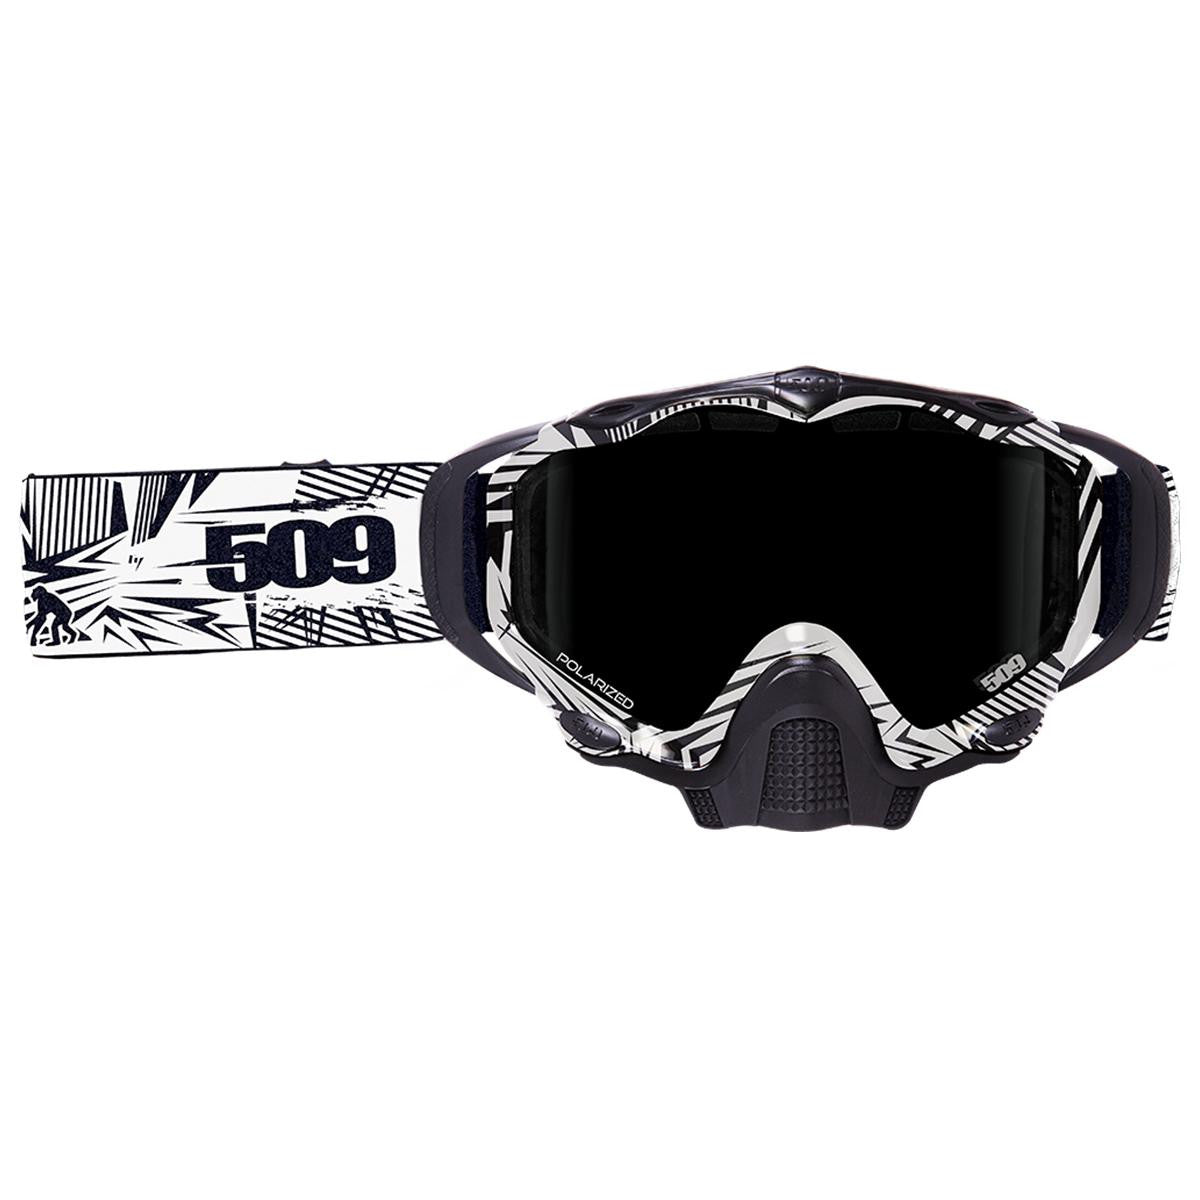 8bcc9ea66482 509 Sinister X5 Snow Goggles - Geared 2 Adventure